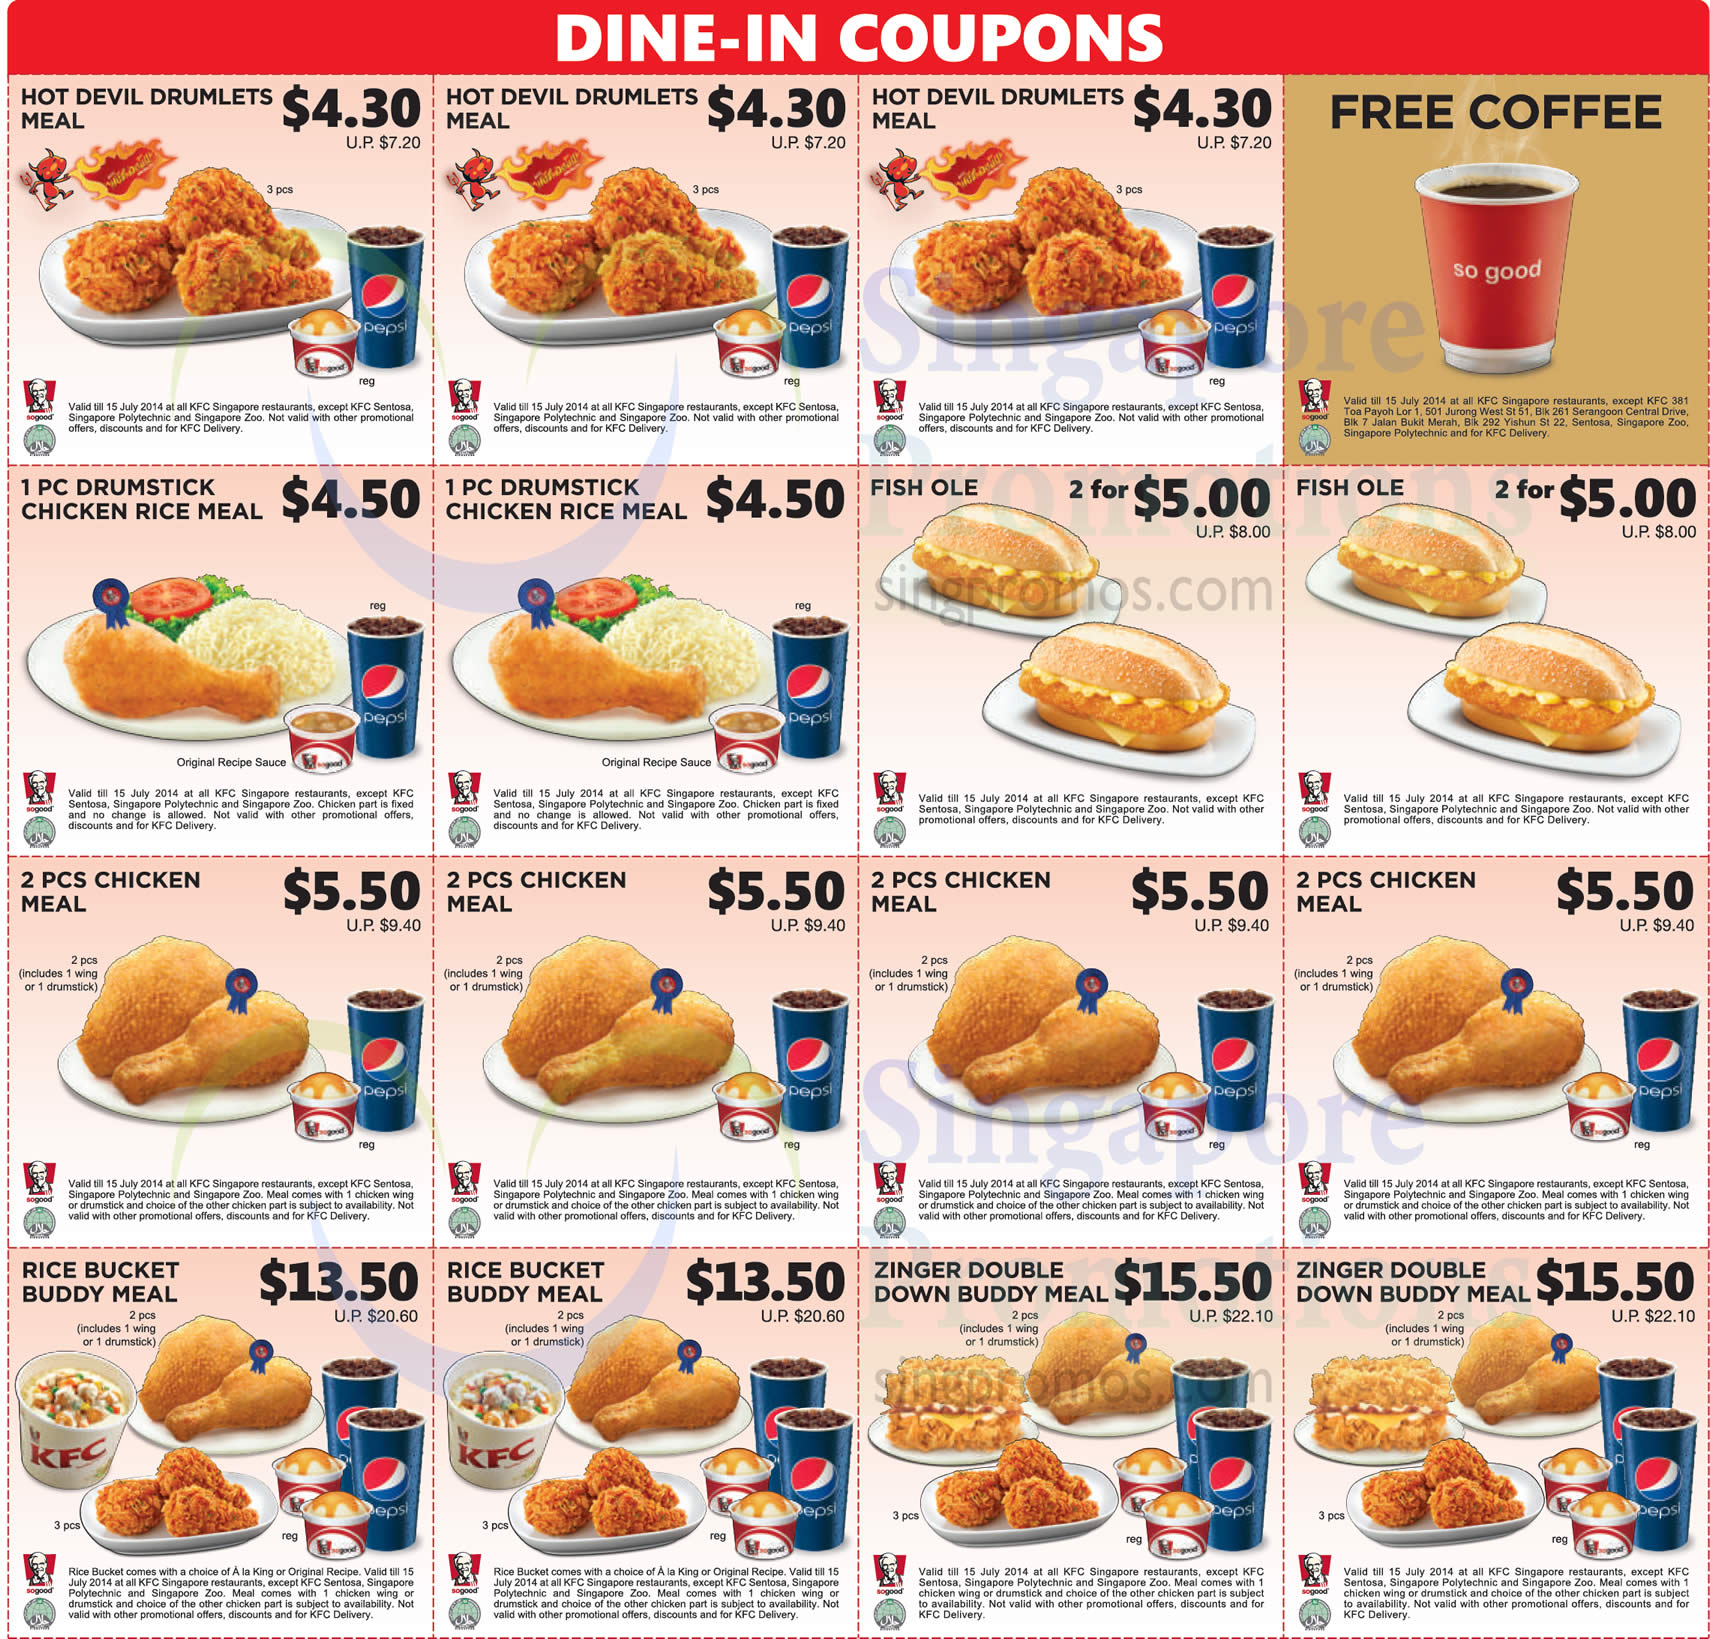 picture relating to Kfc Coupons Printable named All Dine-Within just Discount codes Printable » KFC Dine-Within Lower price Discount coupons